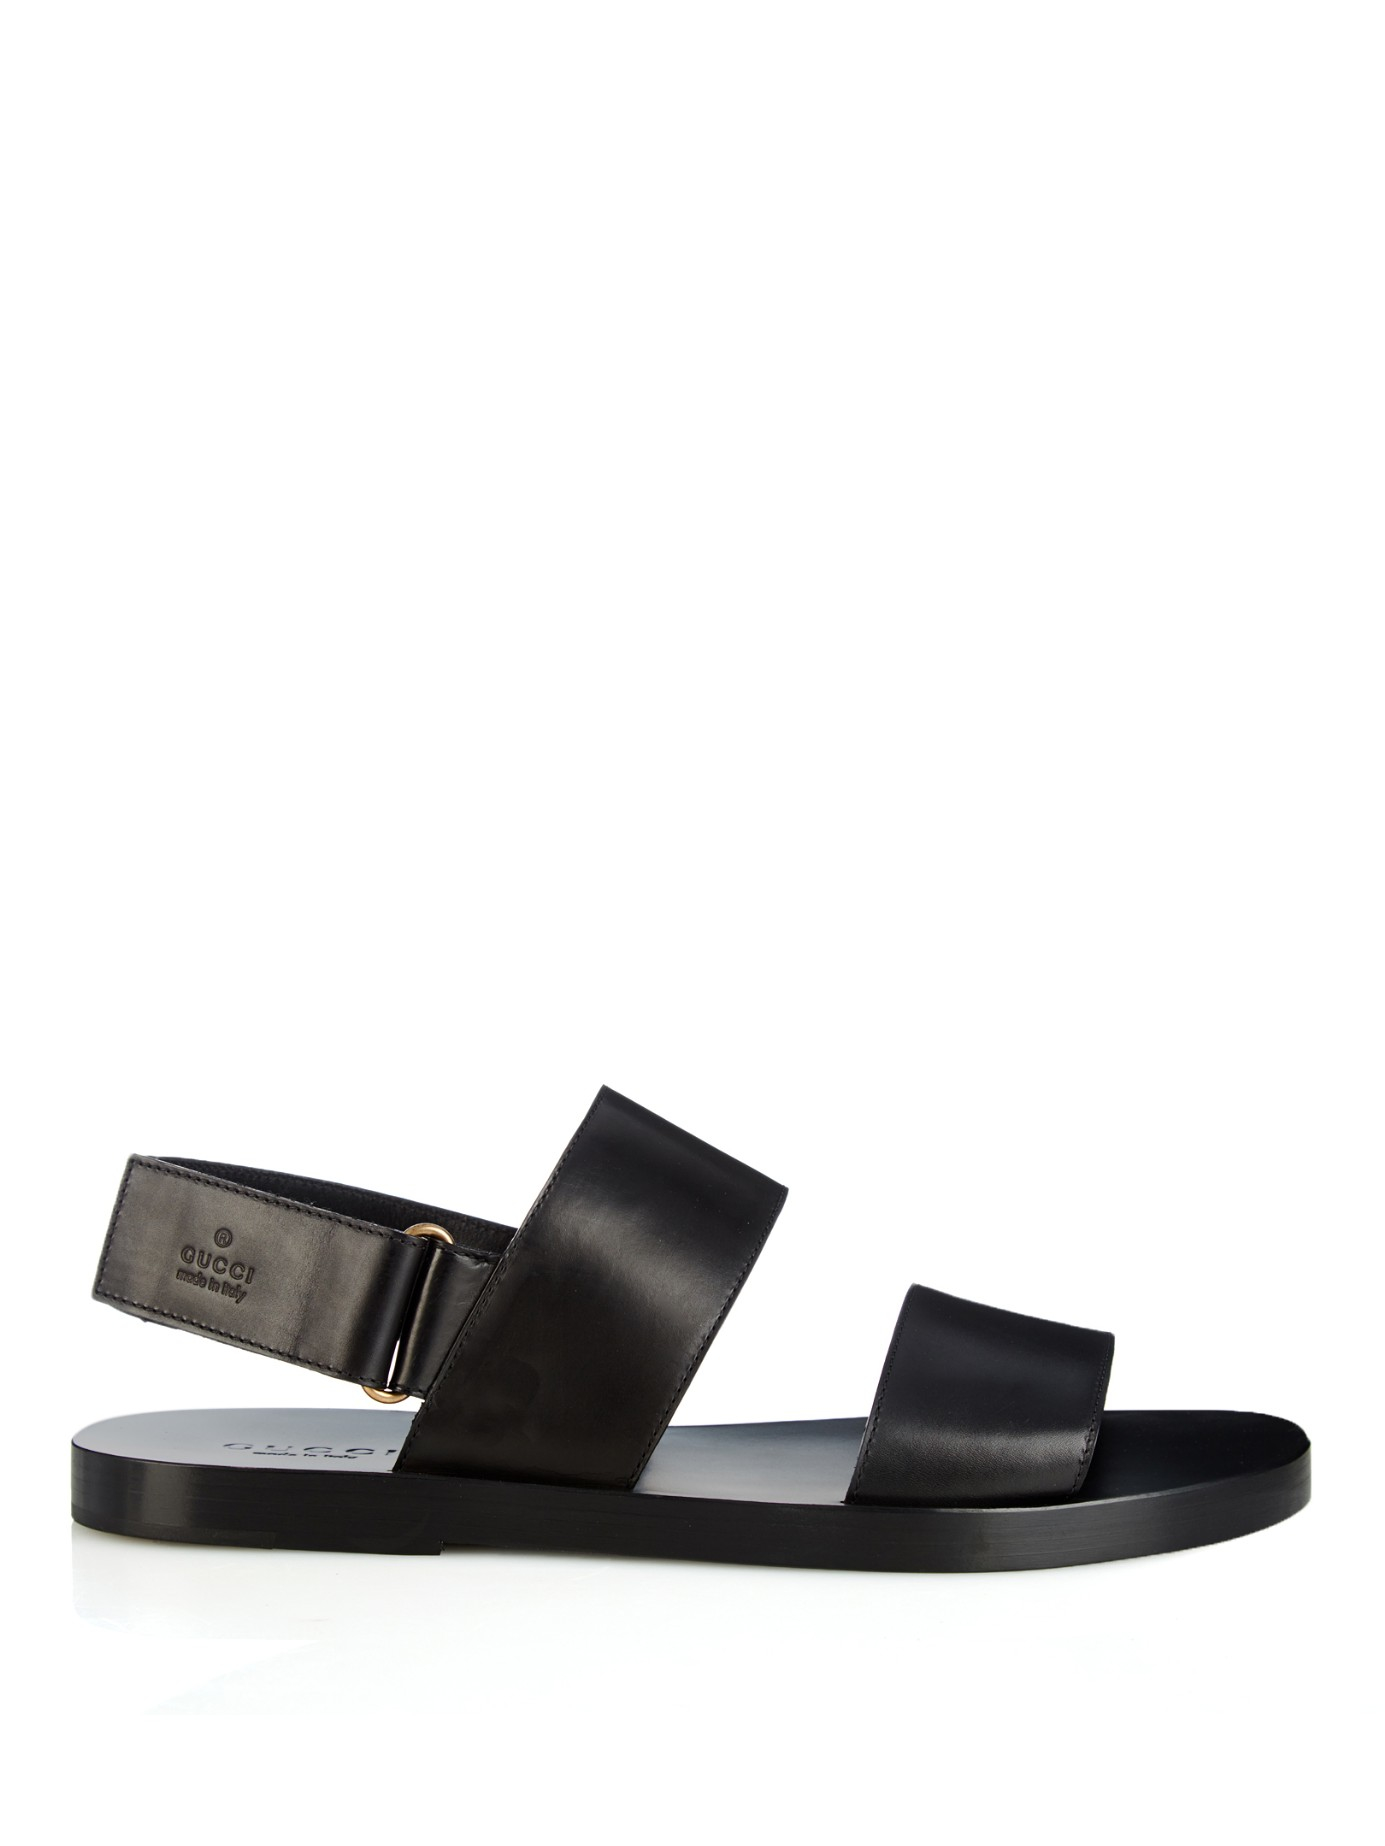 Lyst Gucci Double Strap Leather Sandals In Black For Men